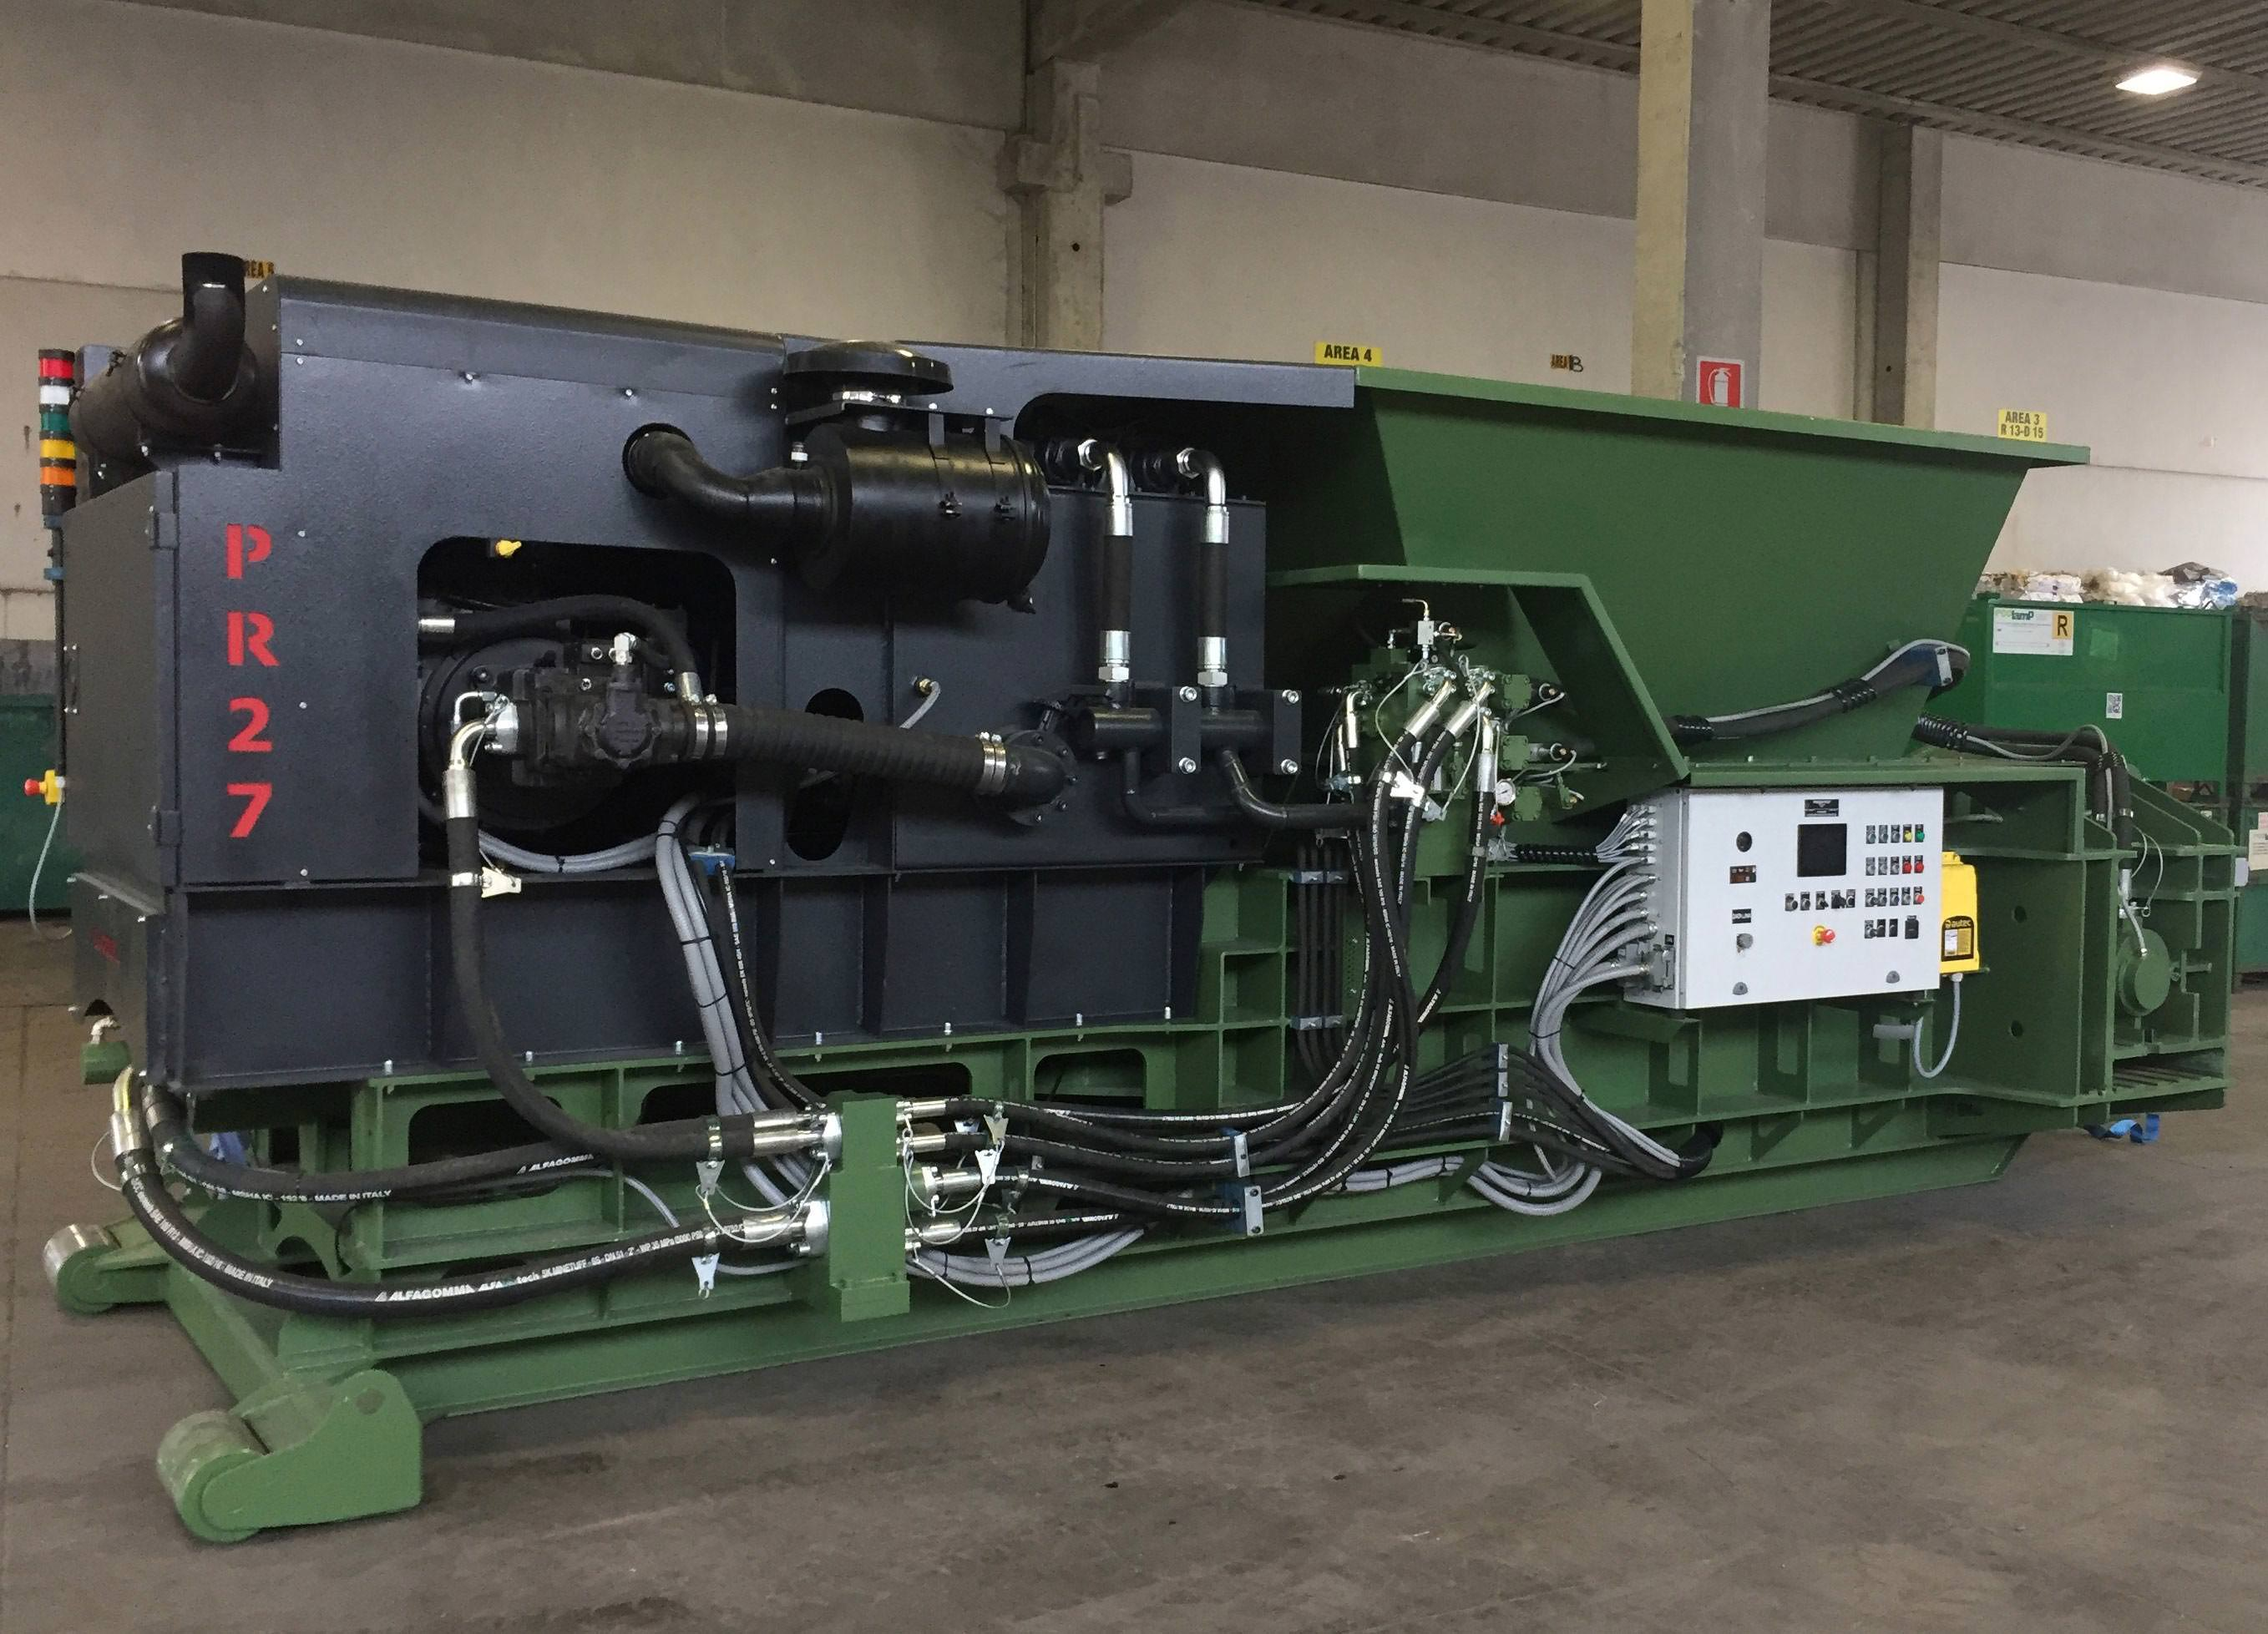 Idromec mobile baler multimaterial PR27 for waste processing